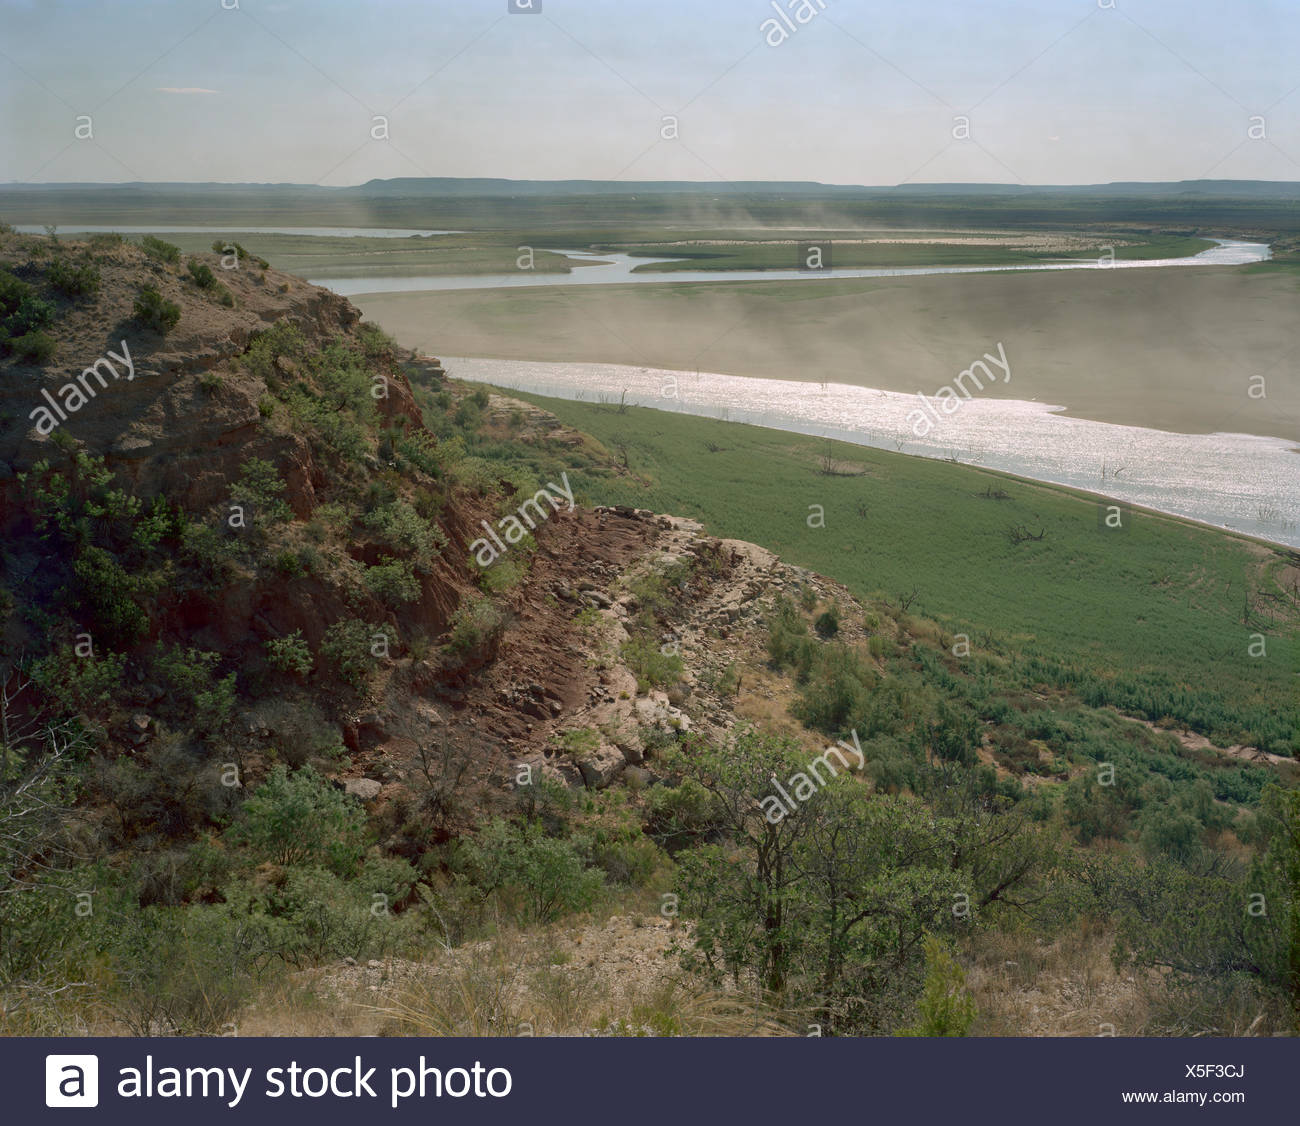 The E. V. Spence Reservoir after a prolonged drought. - Stock Image